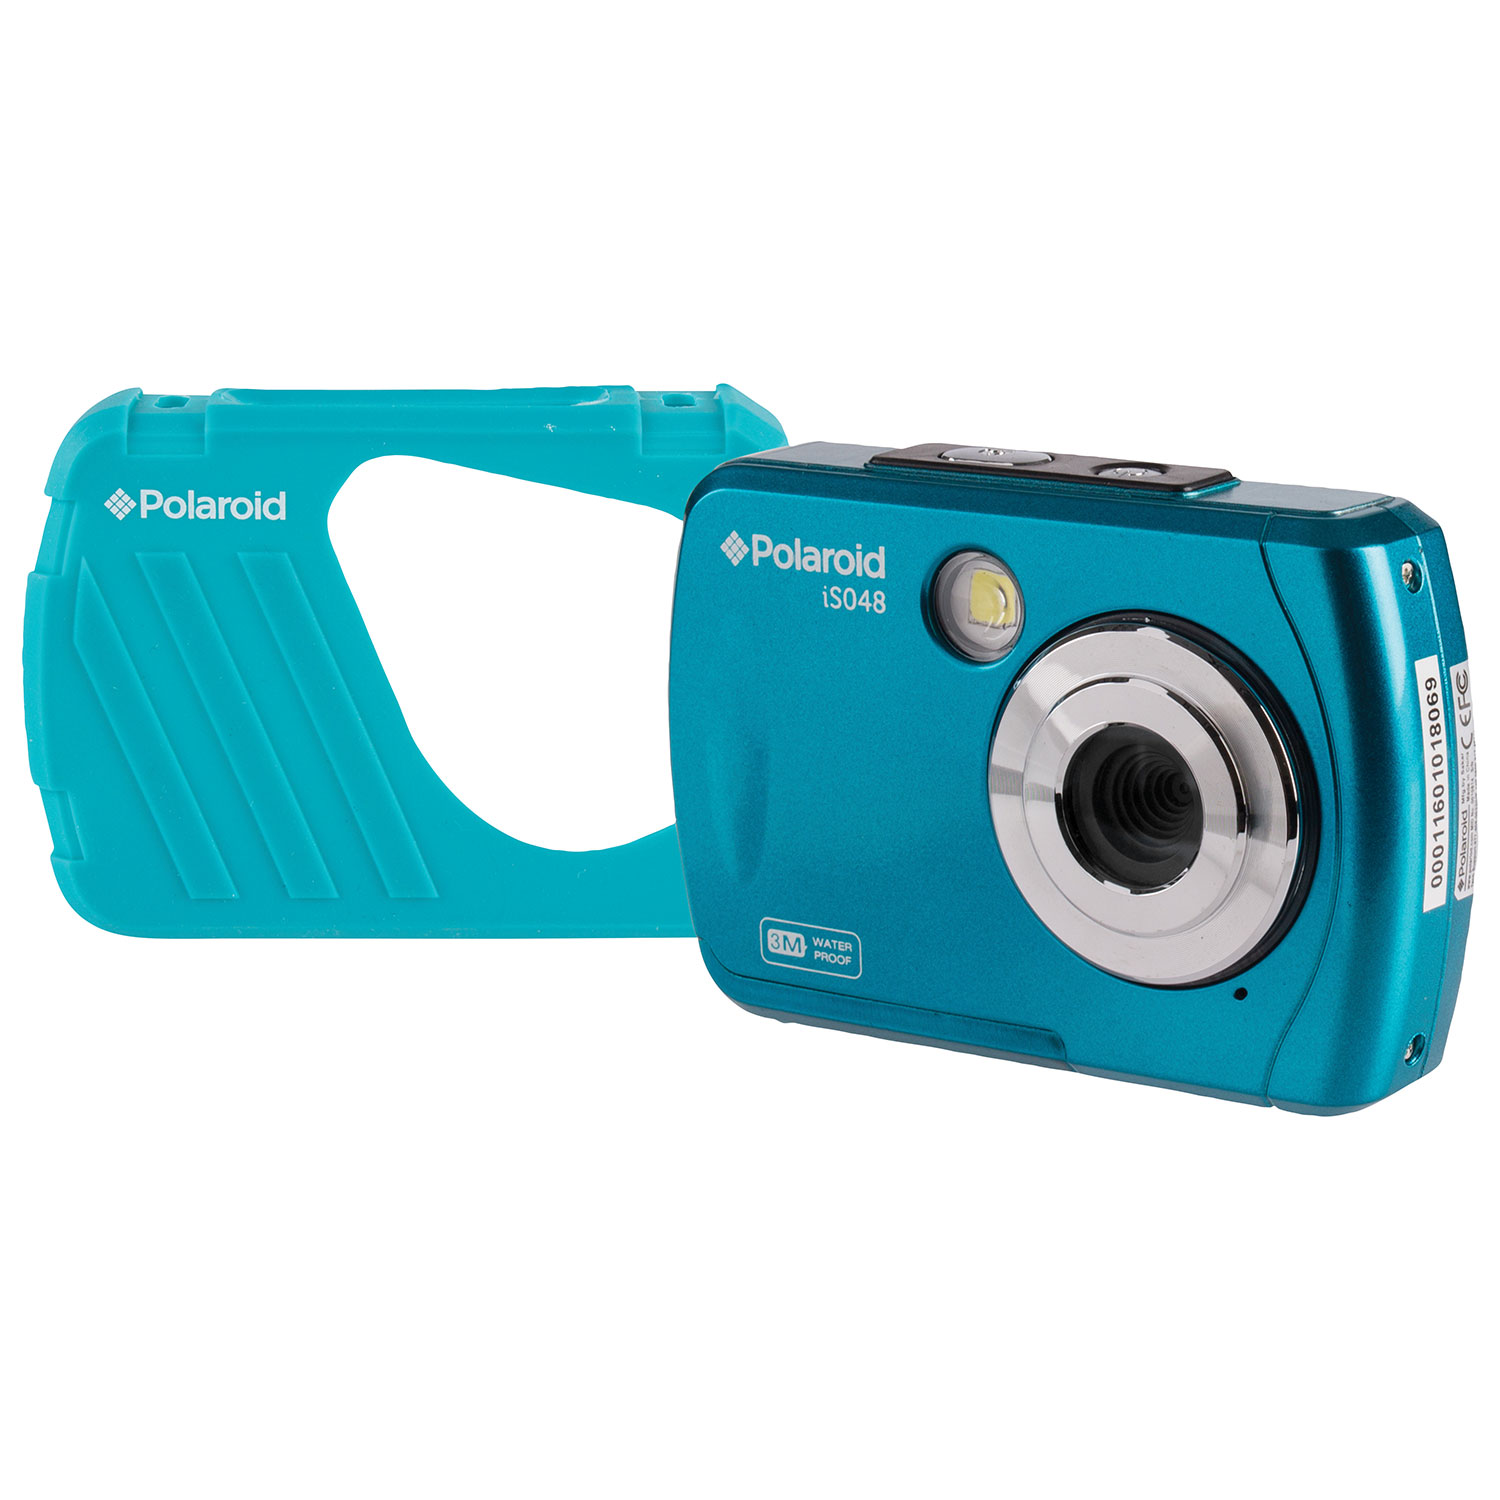 Polaroid Iso48 Waterproof 16mp 4x Optical Zoom Digital Camera Teal Maytag Dishwasher Wiring Schematic Free Download Diagrams Point And Shoot Cameras Best Buy Canada